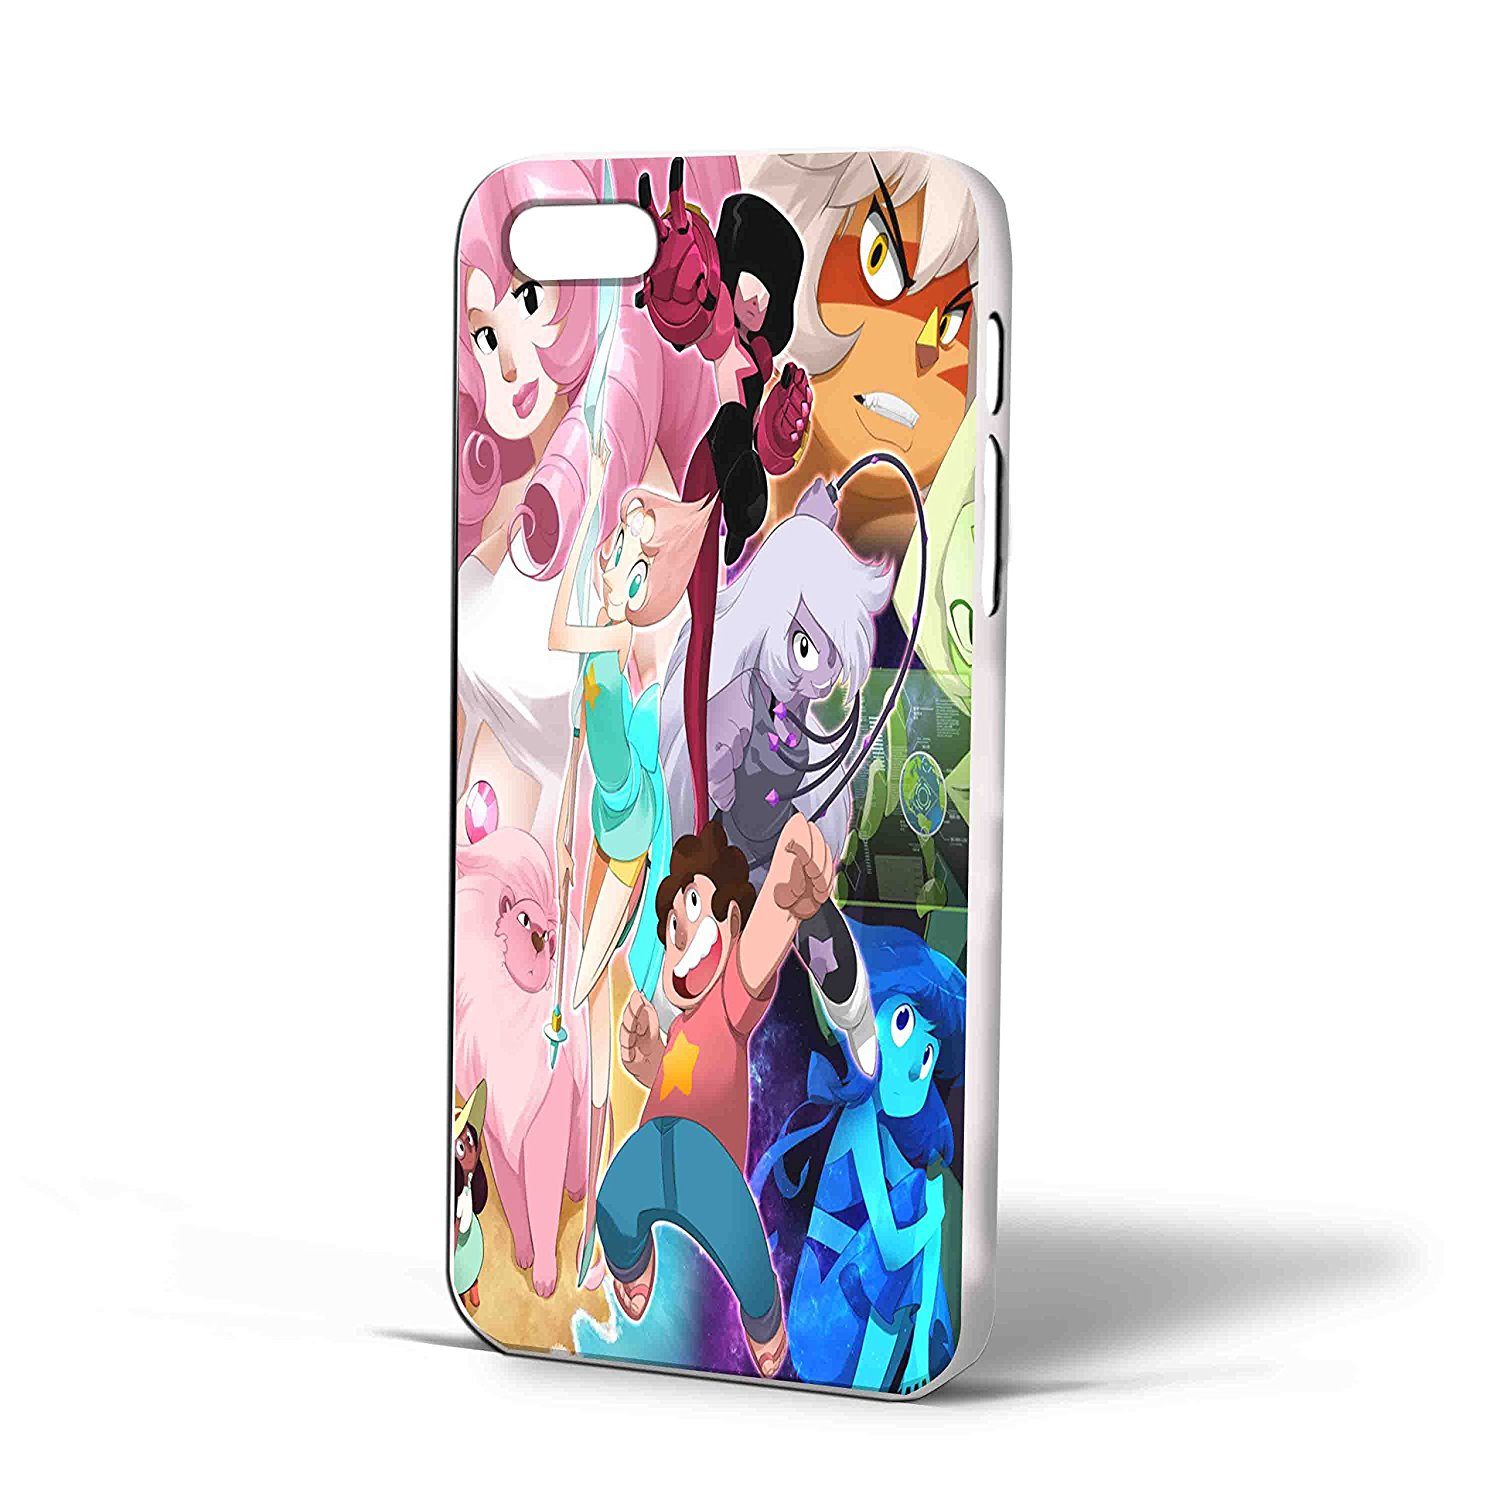 Ganma steven universe collage Case For iPhone Case (Case For iPhone 6s plus White)